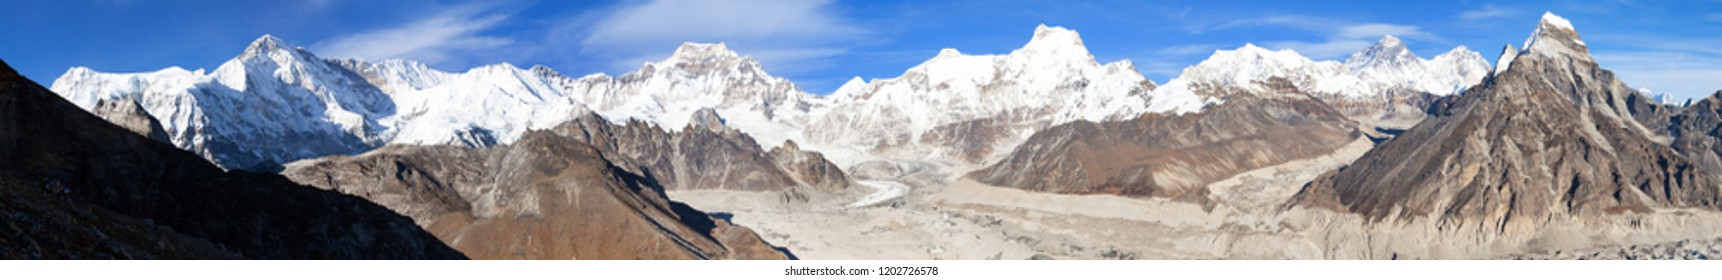 Panoramic evening view from Gokyo valley to Ngozumba glacier and mount Everest, Lhotse and Cho Oyu, Nepal Himalayas mountains